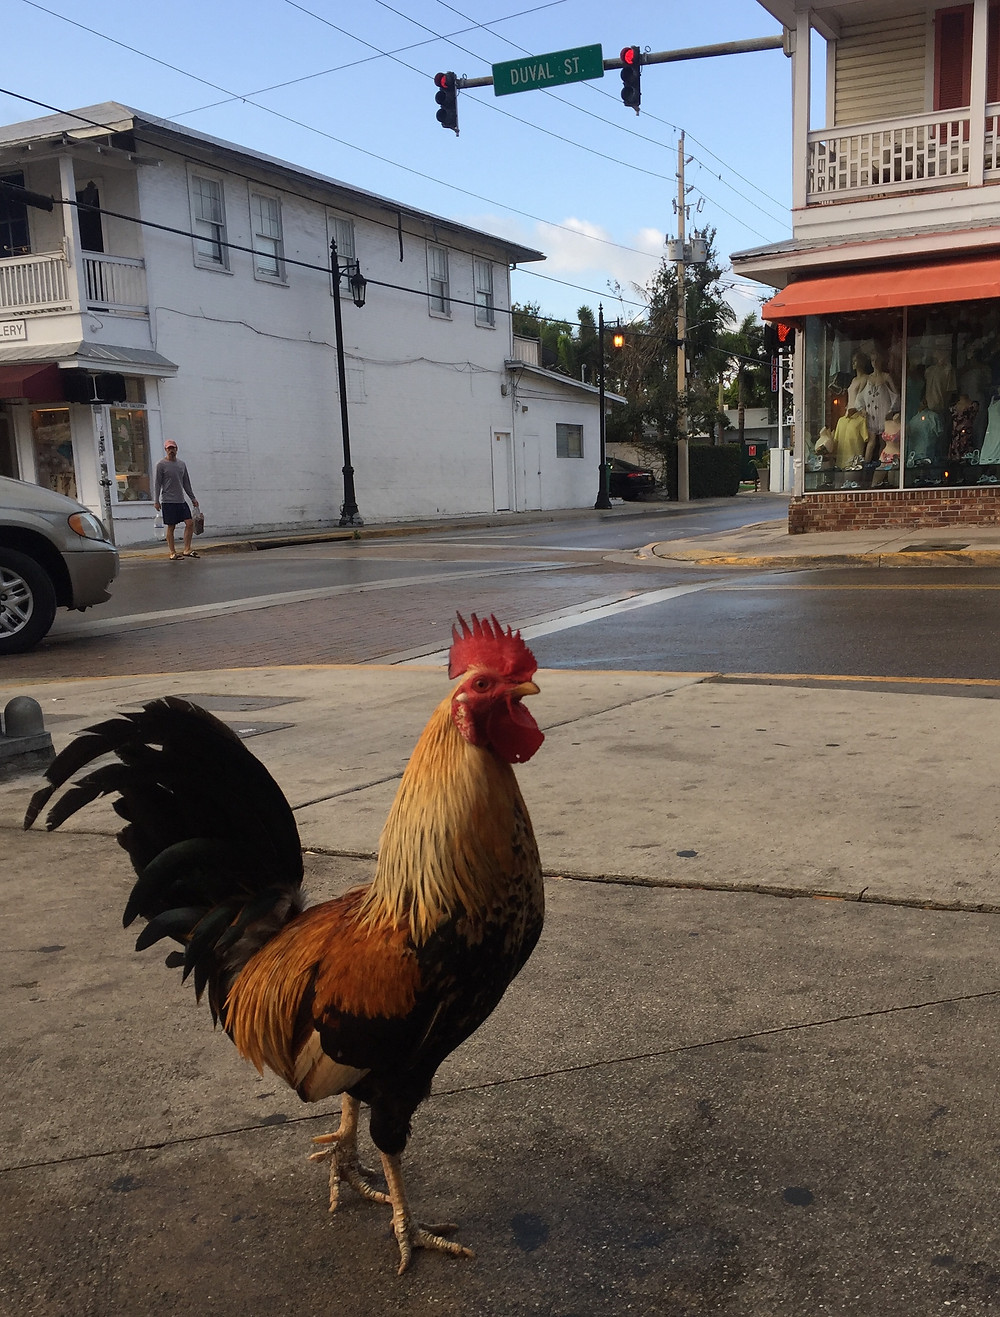 Rooster at the corner of Duval and Truman